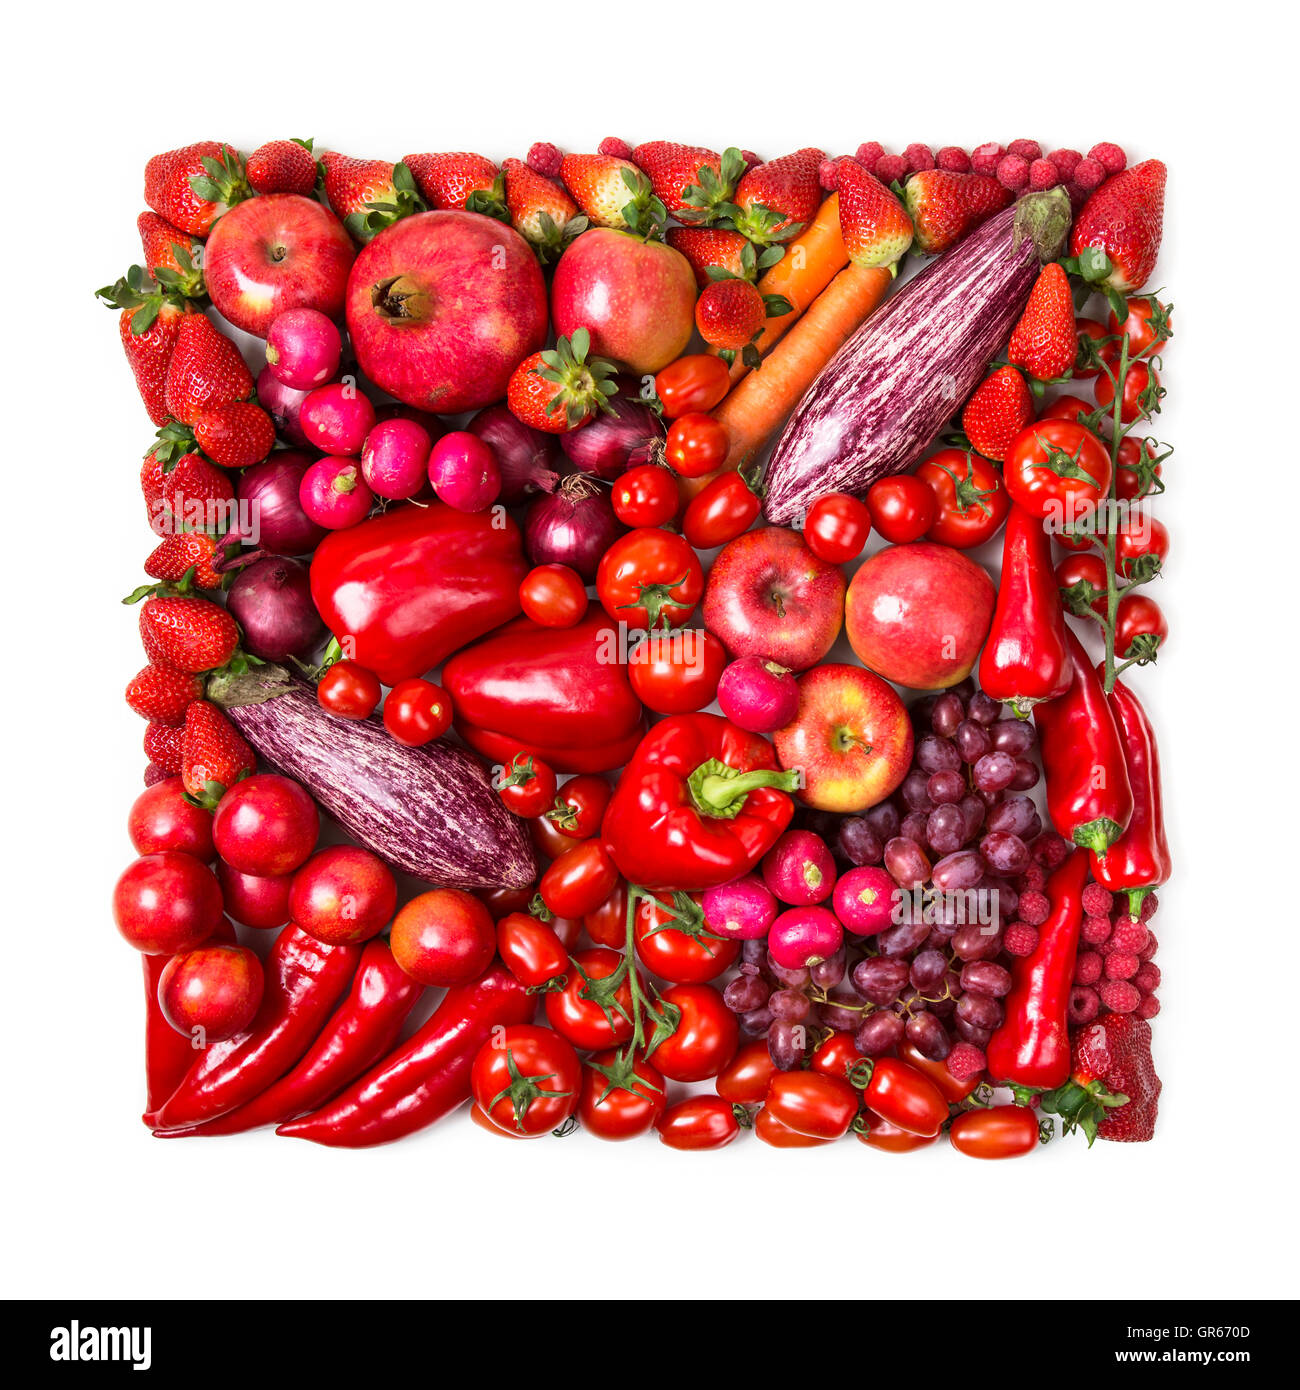 Square of red fruits and vegetables isolated on a white background - Stock Image